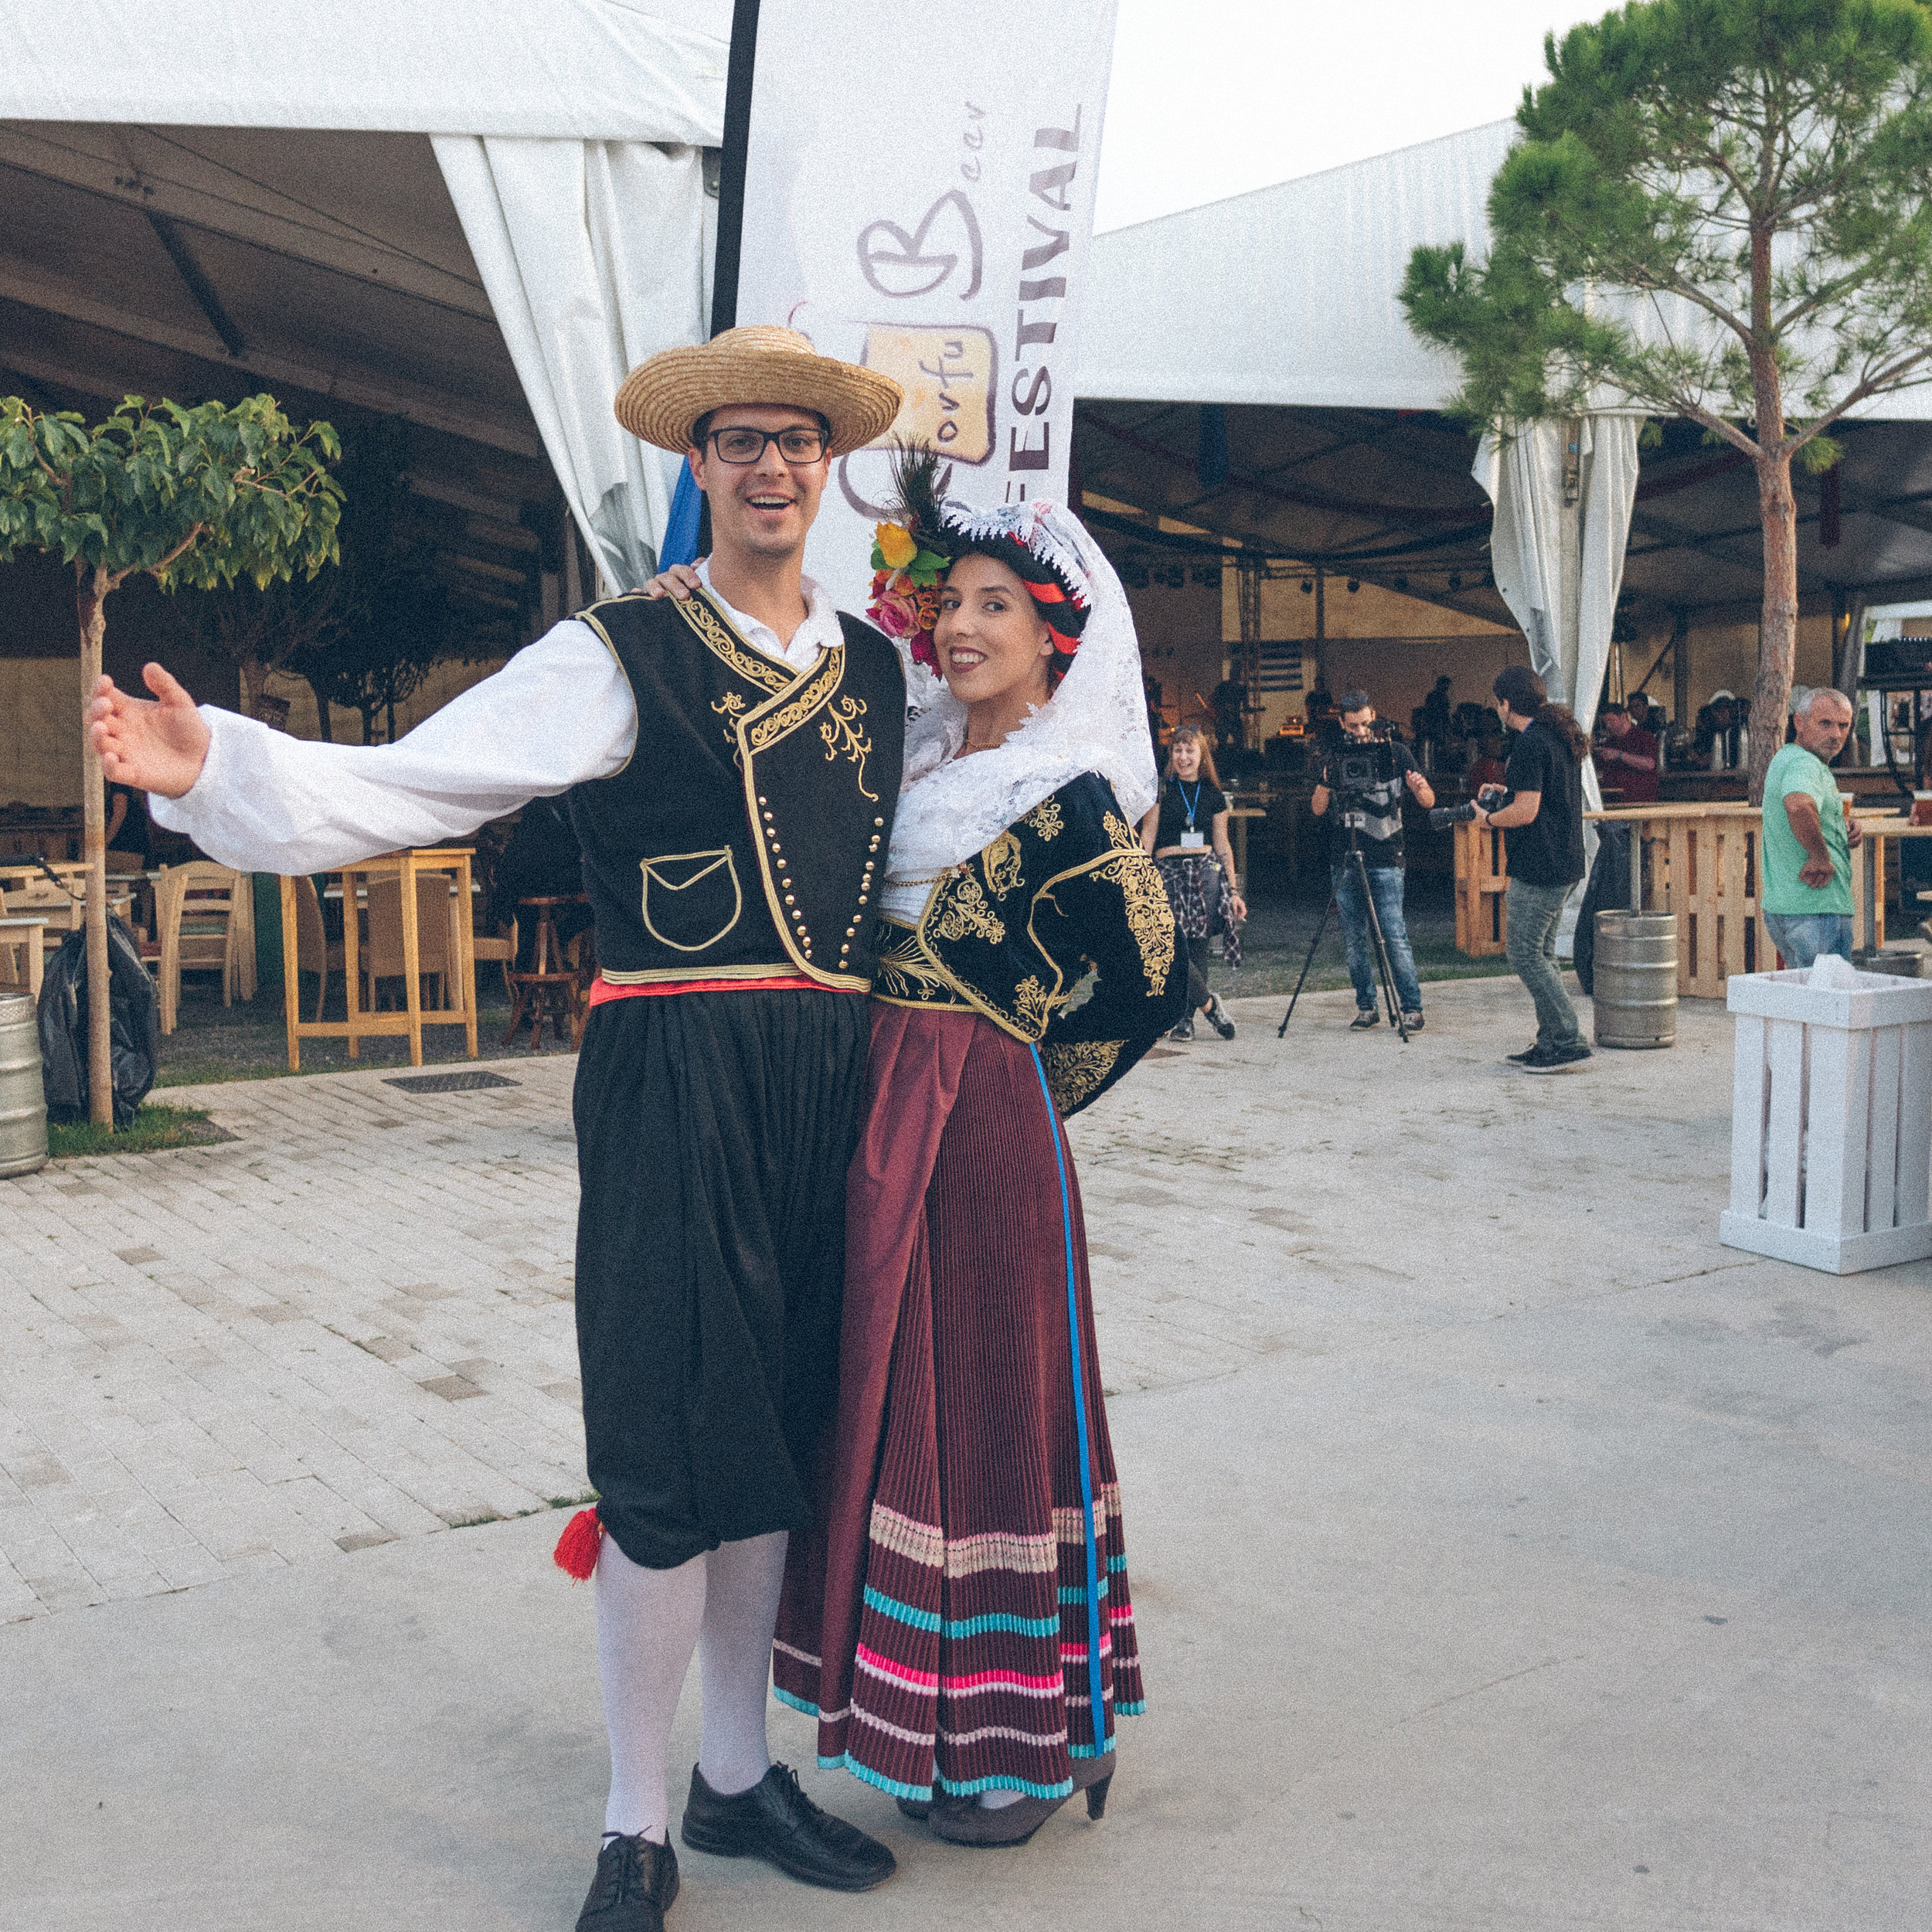 jamie patterson von richtofen and matt chojnacki in traditional corfiot dress